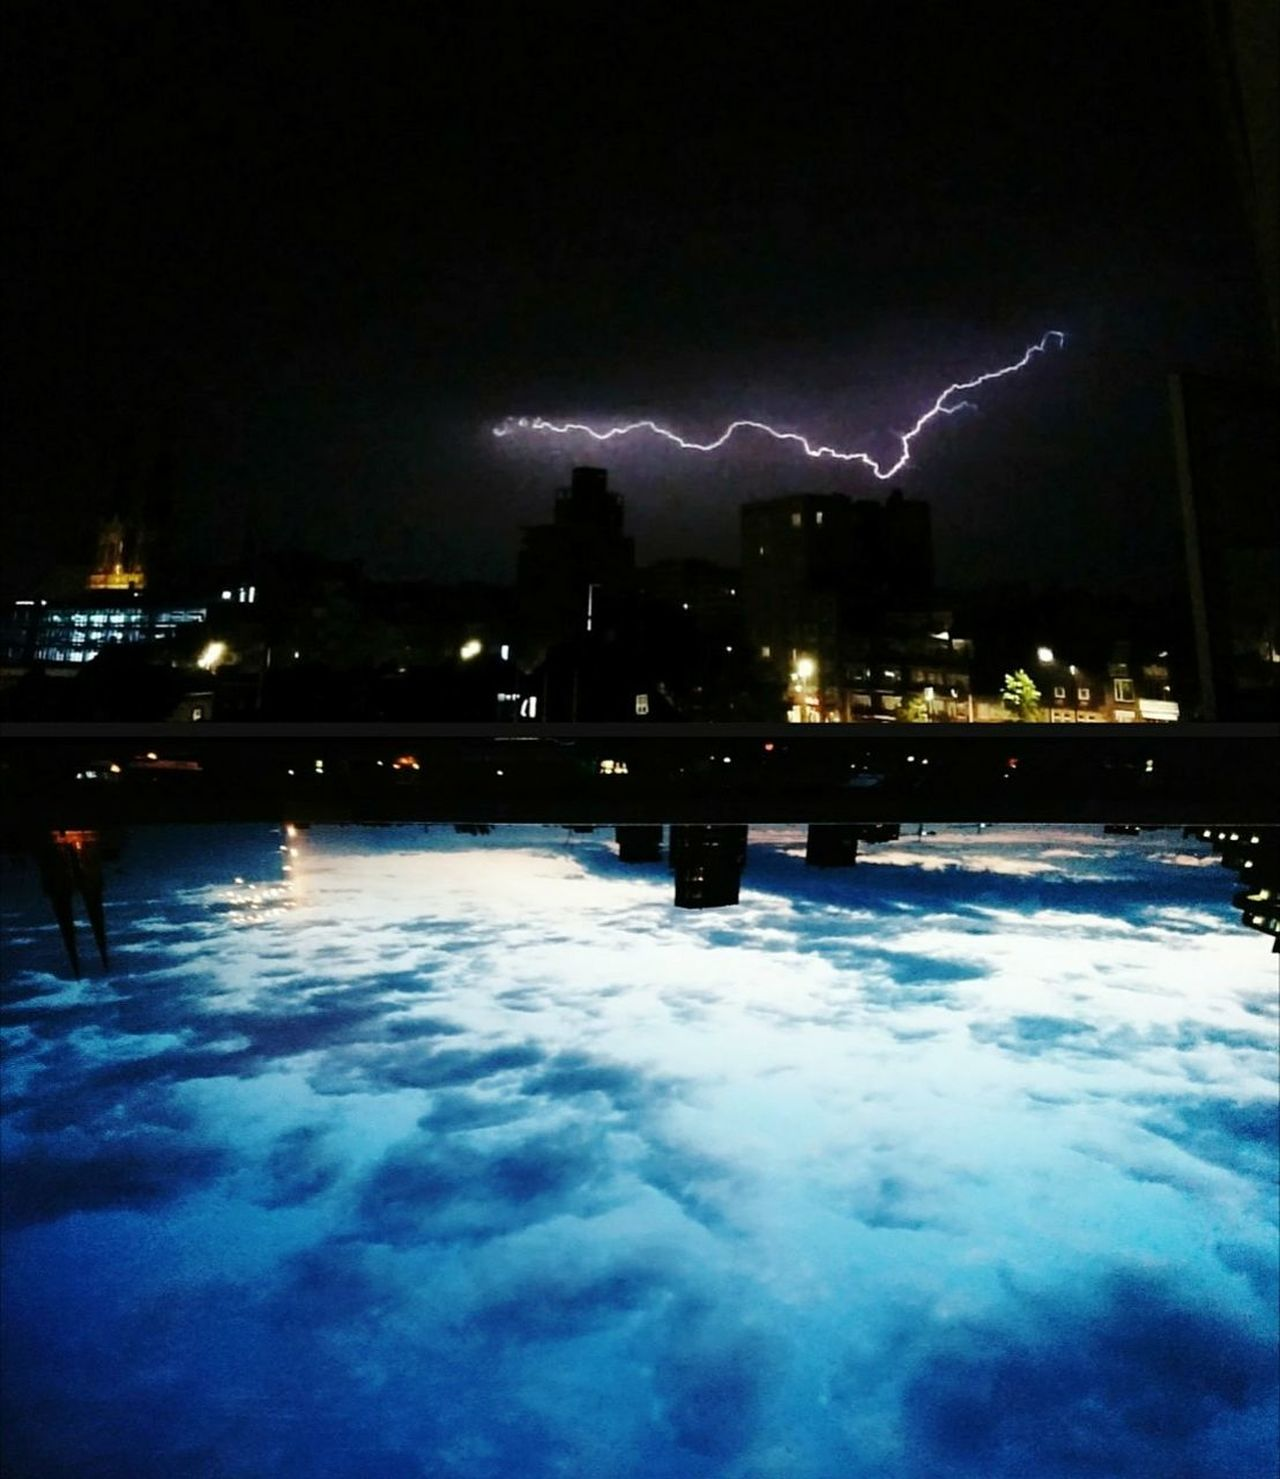 Night Lightning Illuminated Weather Storm Cold Temperature Thunderstorm Power In Nature Sky Cloud - Sky Storm Cloud Outdoors Nature Forked Lightning Water Beauty In Nature City Cityscape Dimension Dimensions Dimensions Intersection Day And Night Day And Night Photography Dreamy Electricity